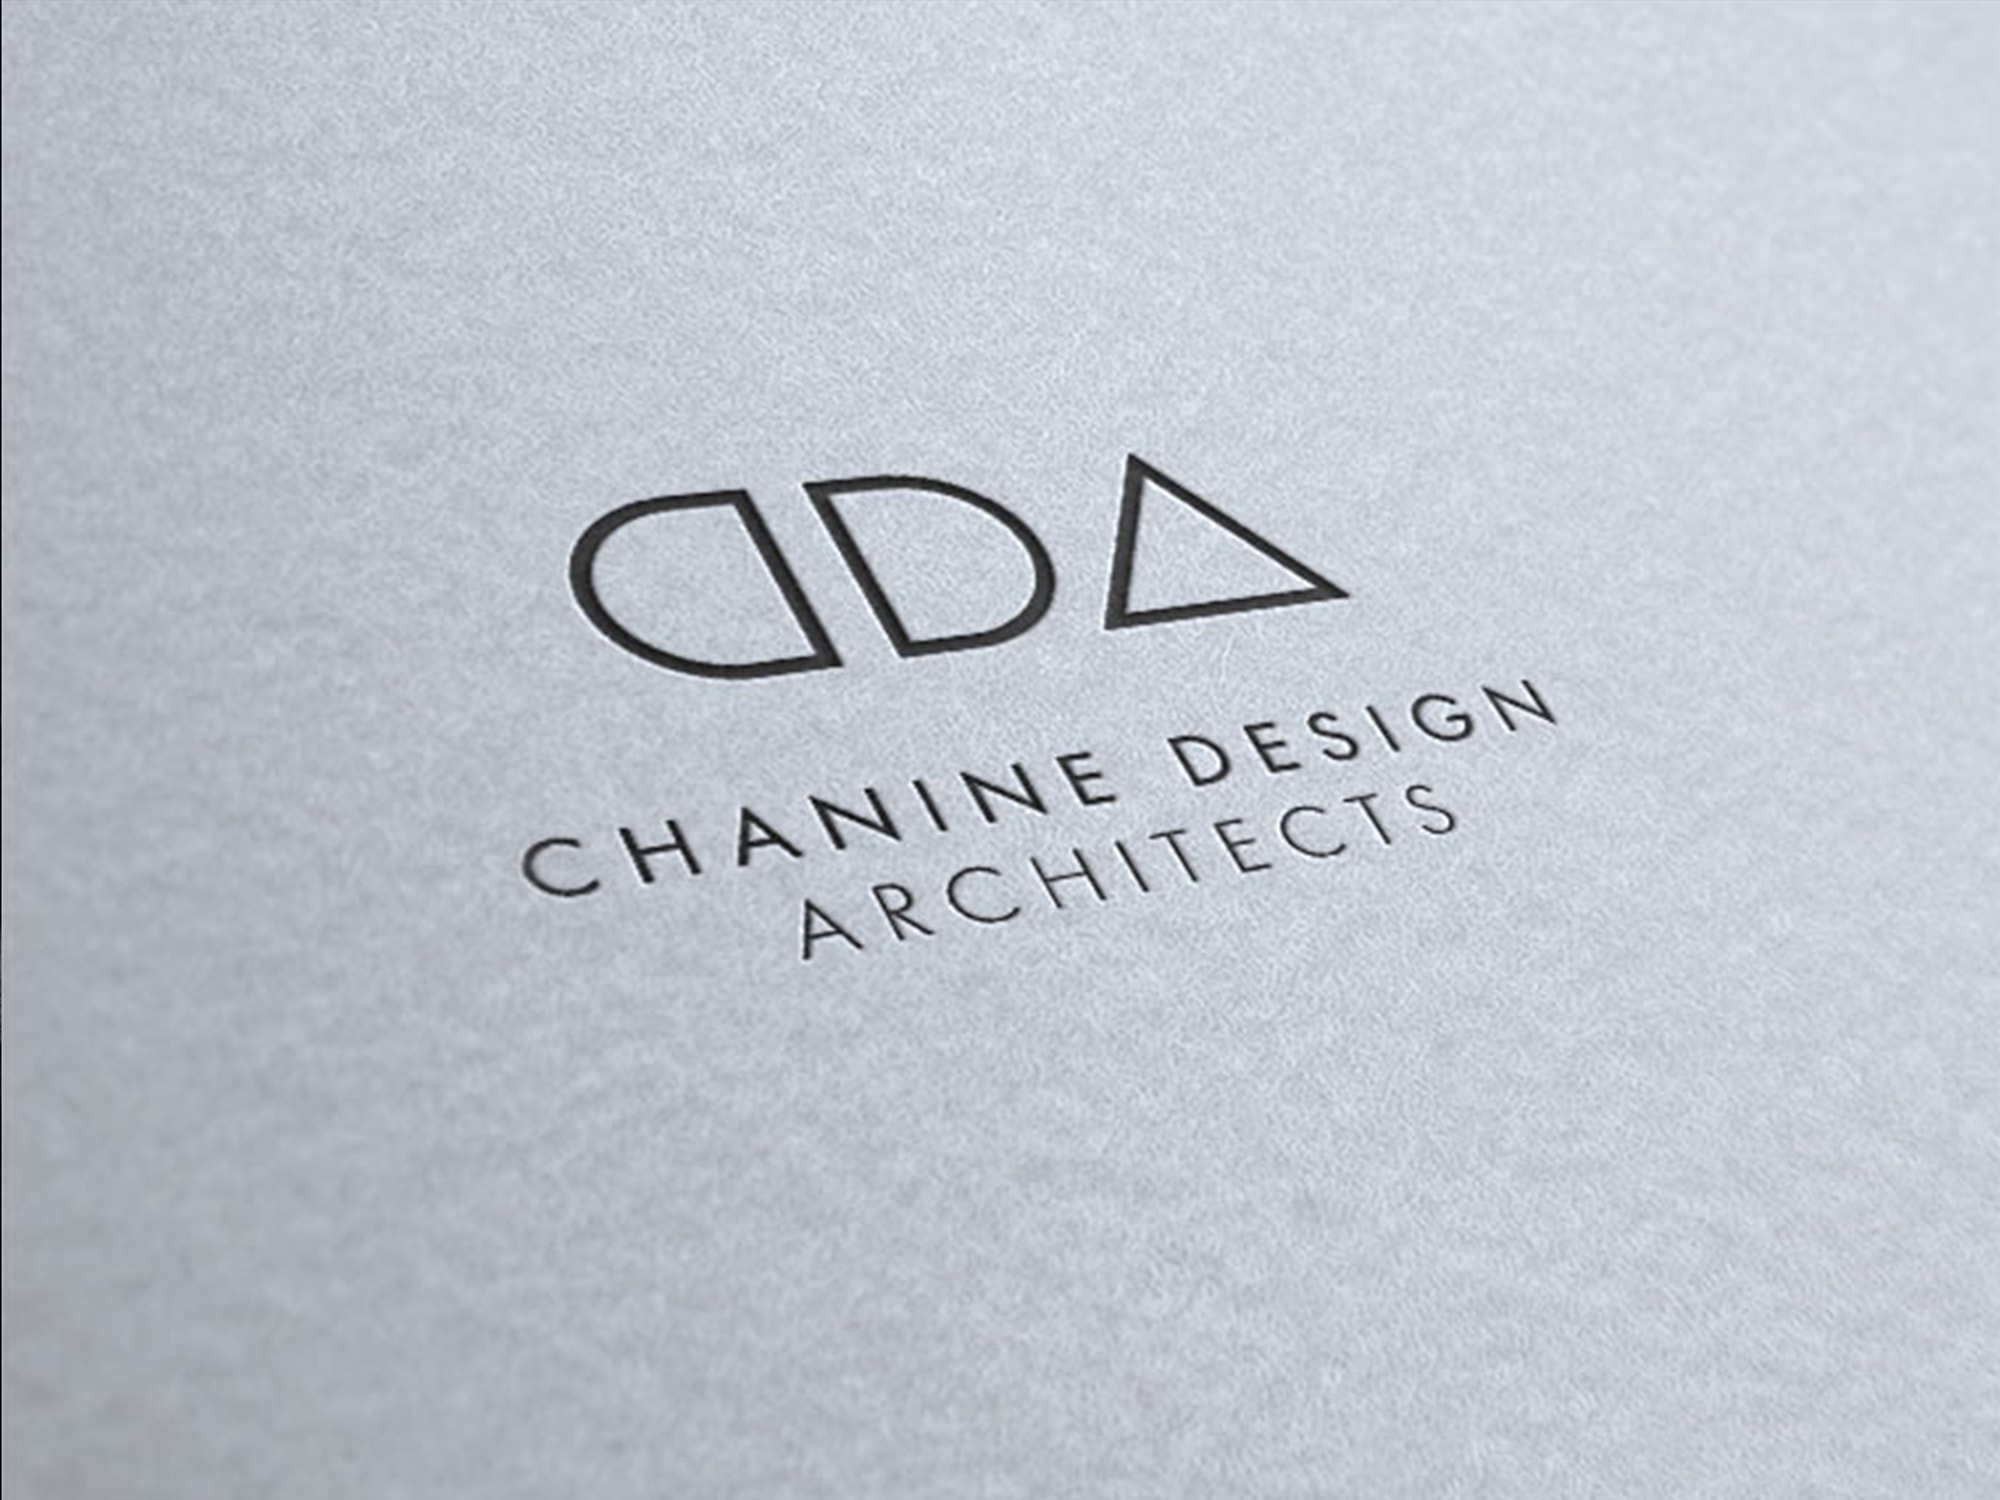 CD Architects